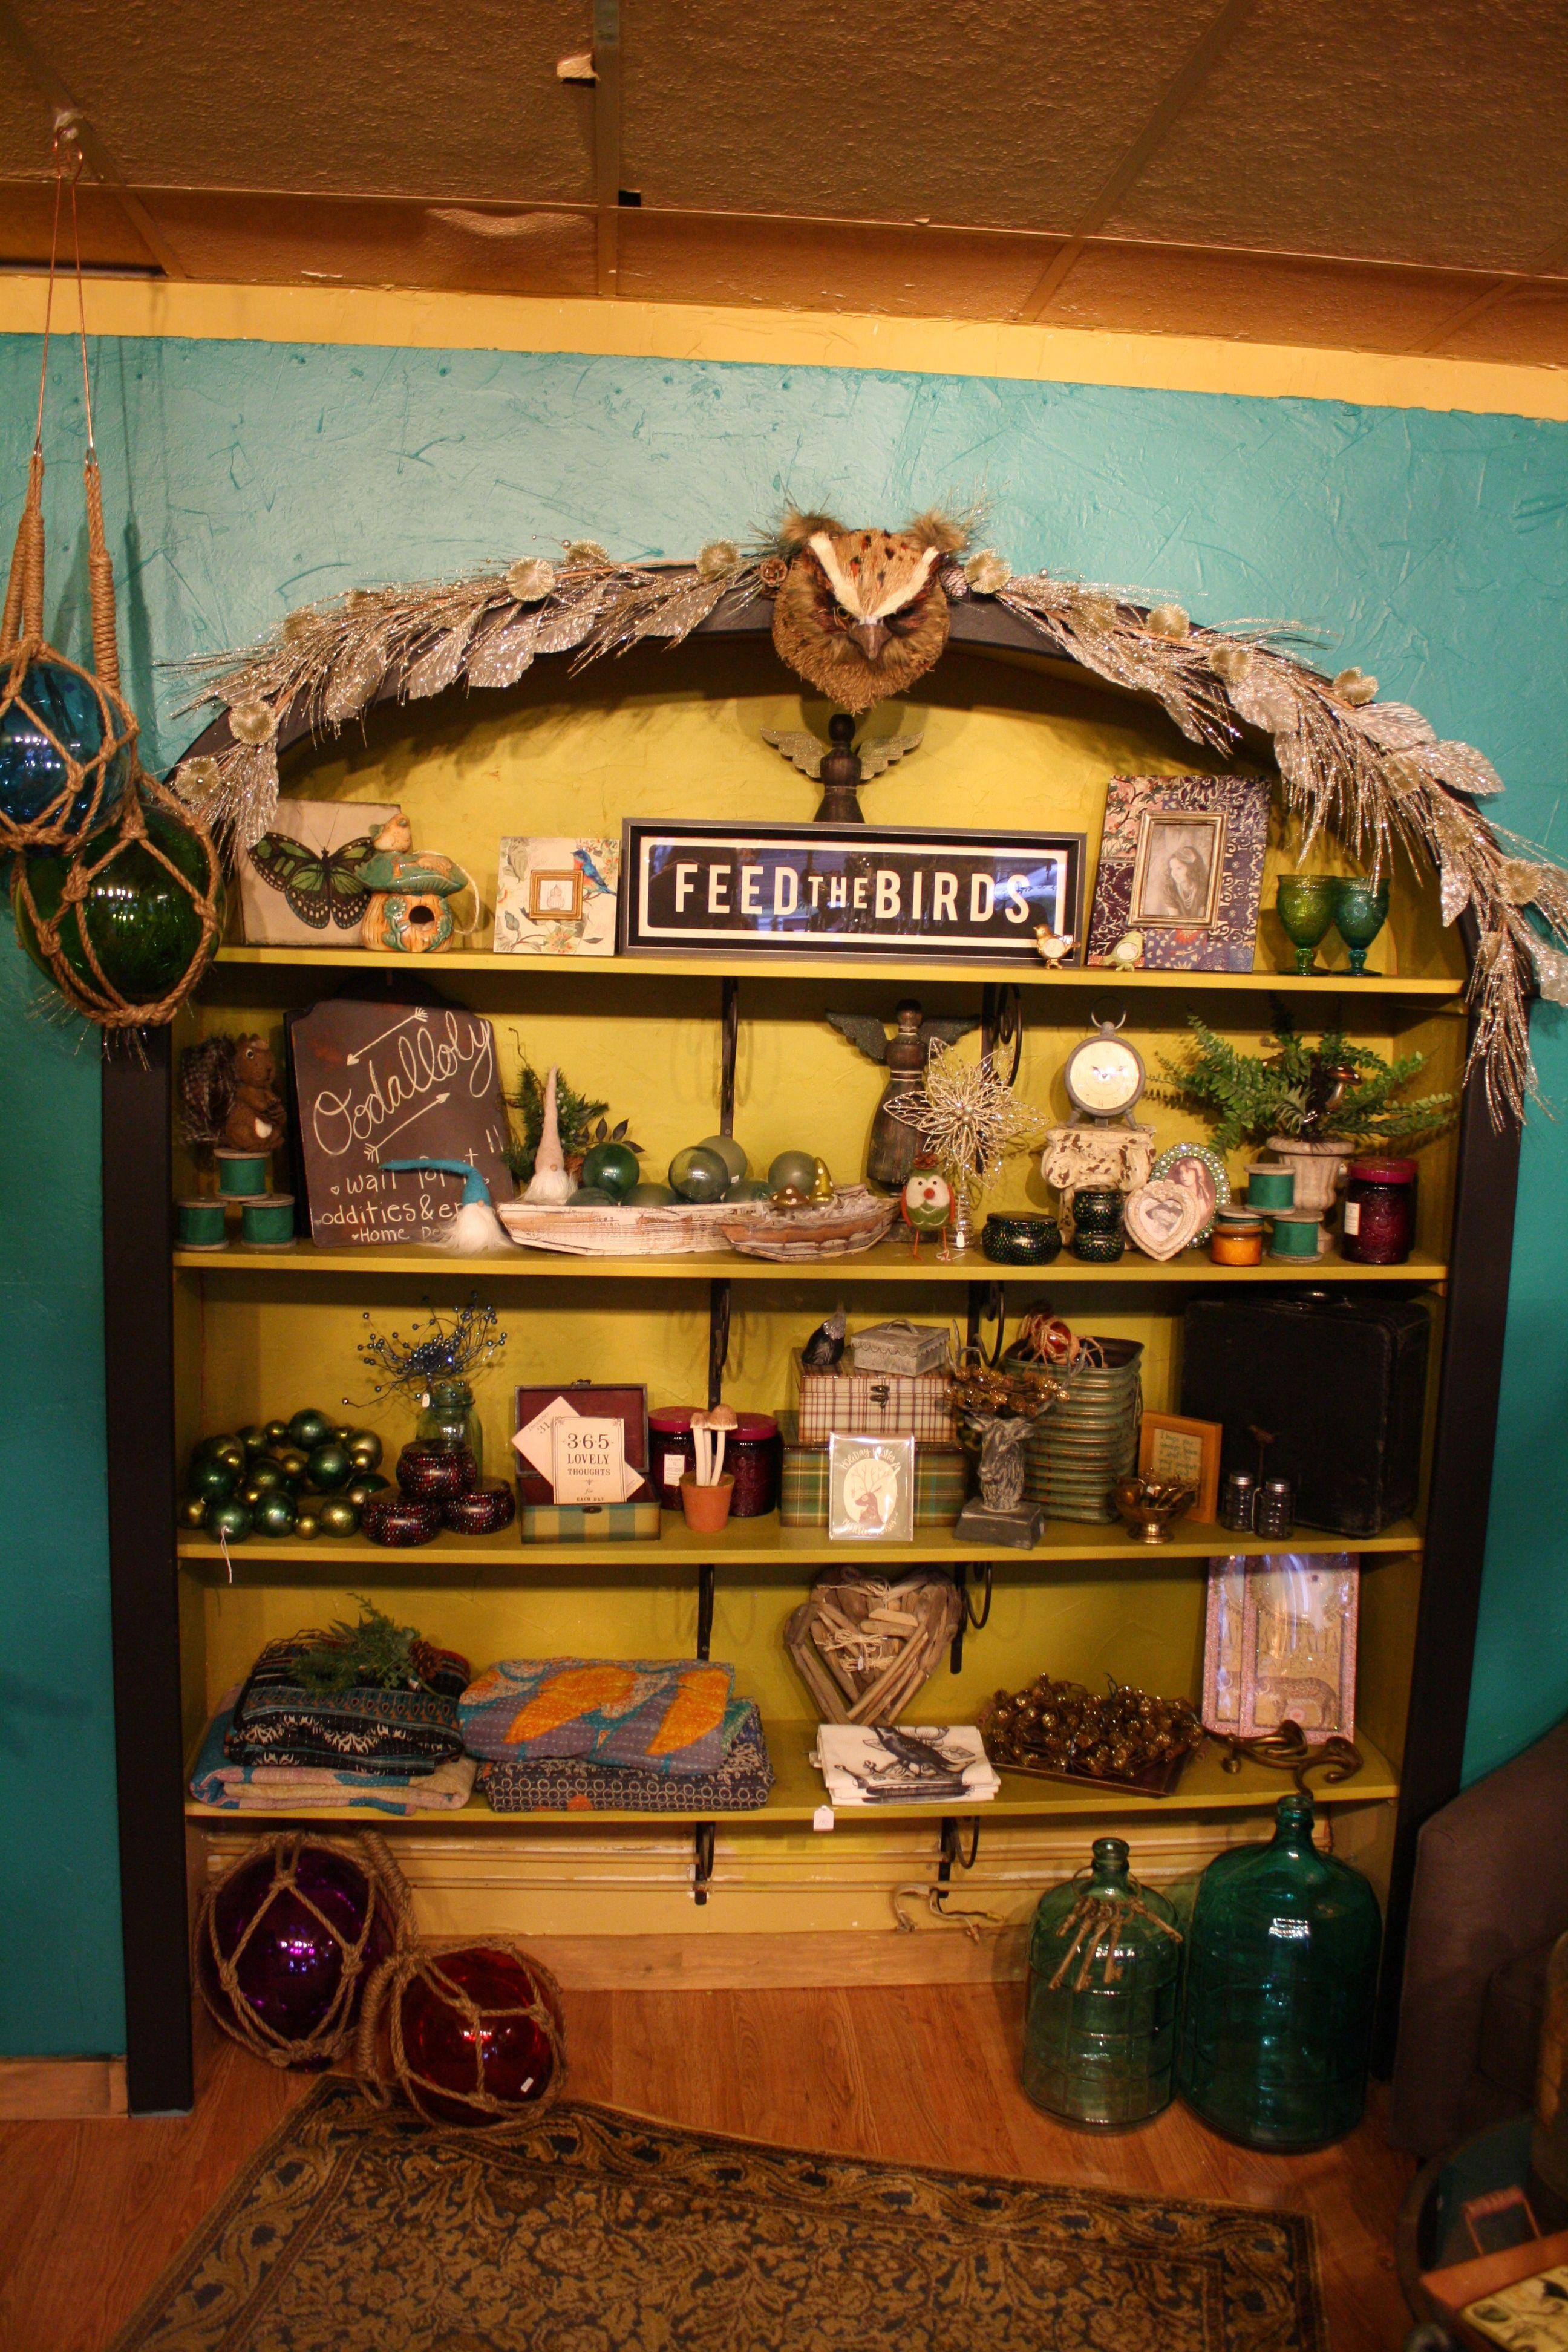 Some of the unique items for sale at Oodalolly are showcased.-Photo by Lindsay Olsen